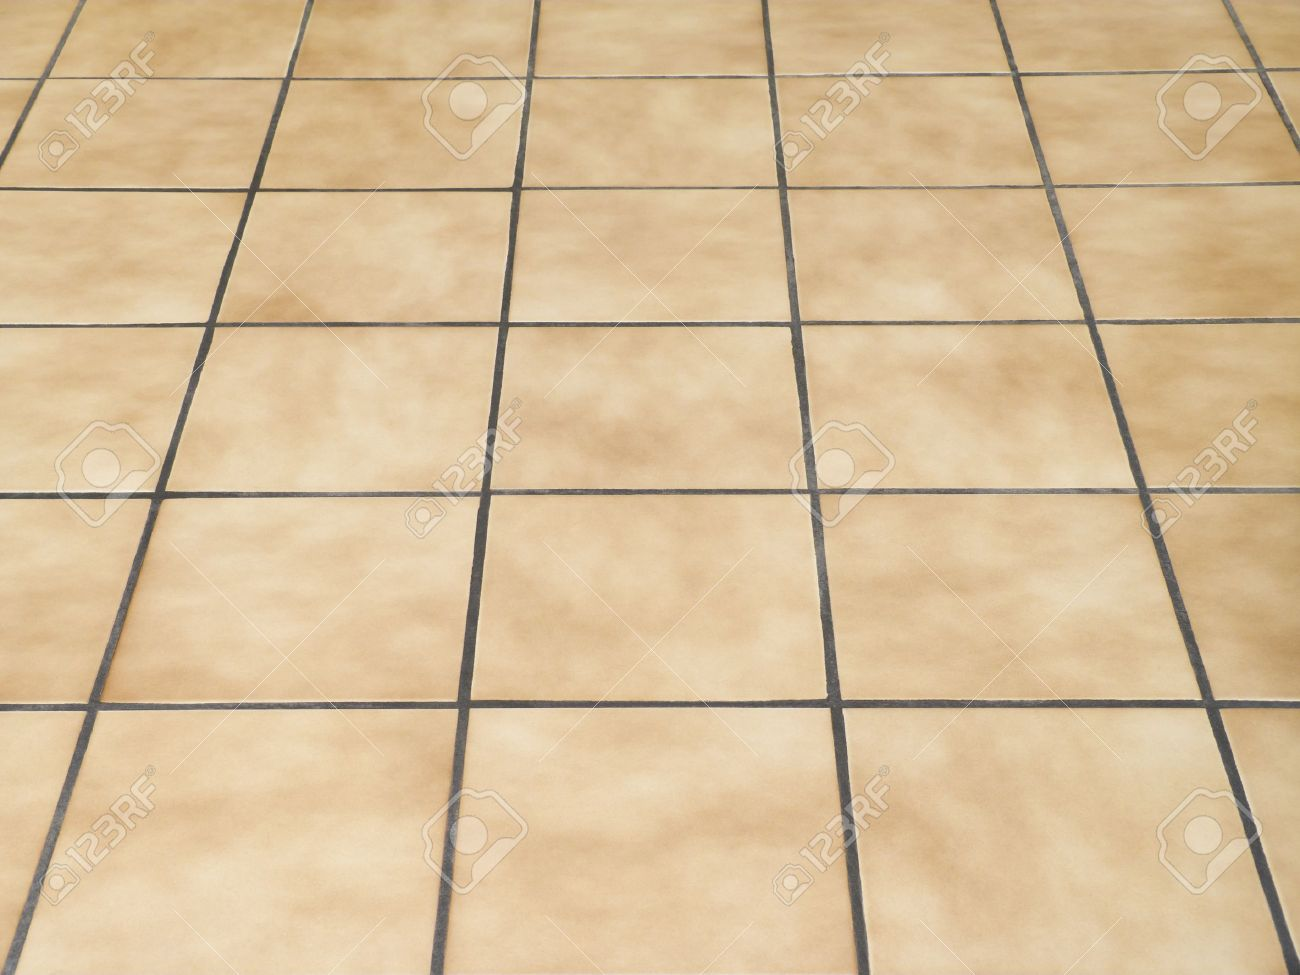 Brown ceramic floor tiles closeup texture Stock Photo   10365872. Brown Ceramic Floor Tiles Closeup Texture Stock Photo  Picture And